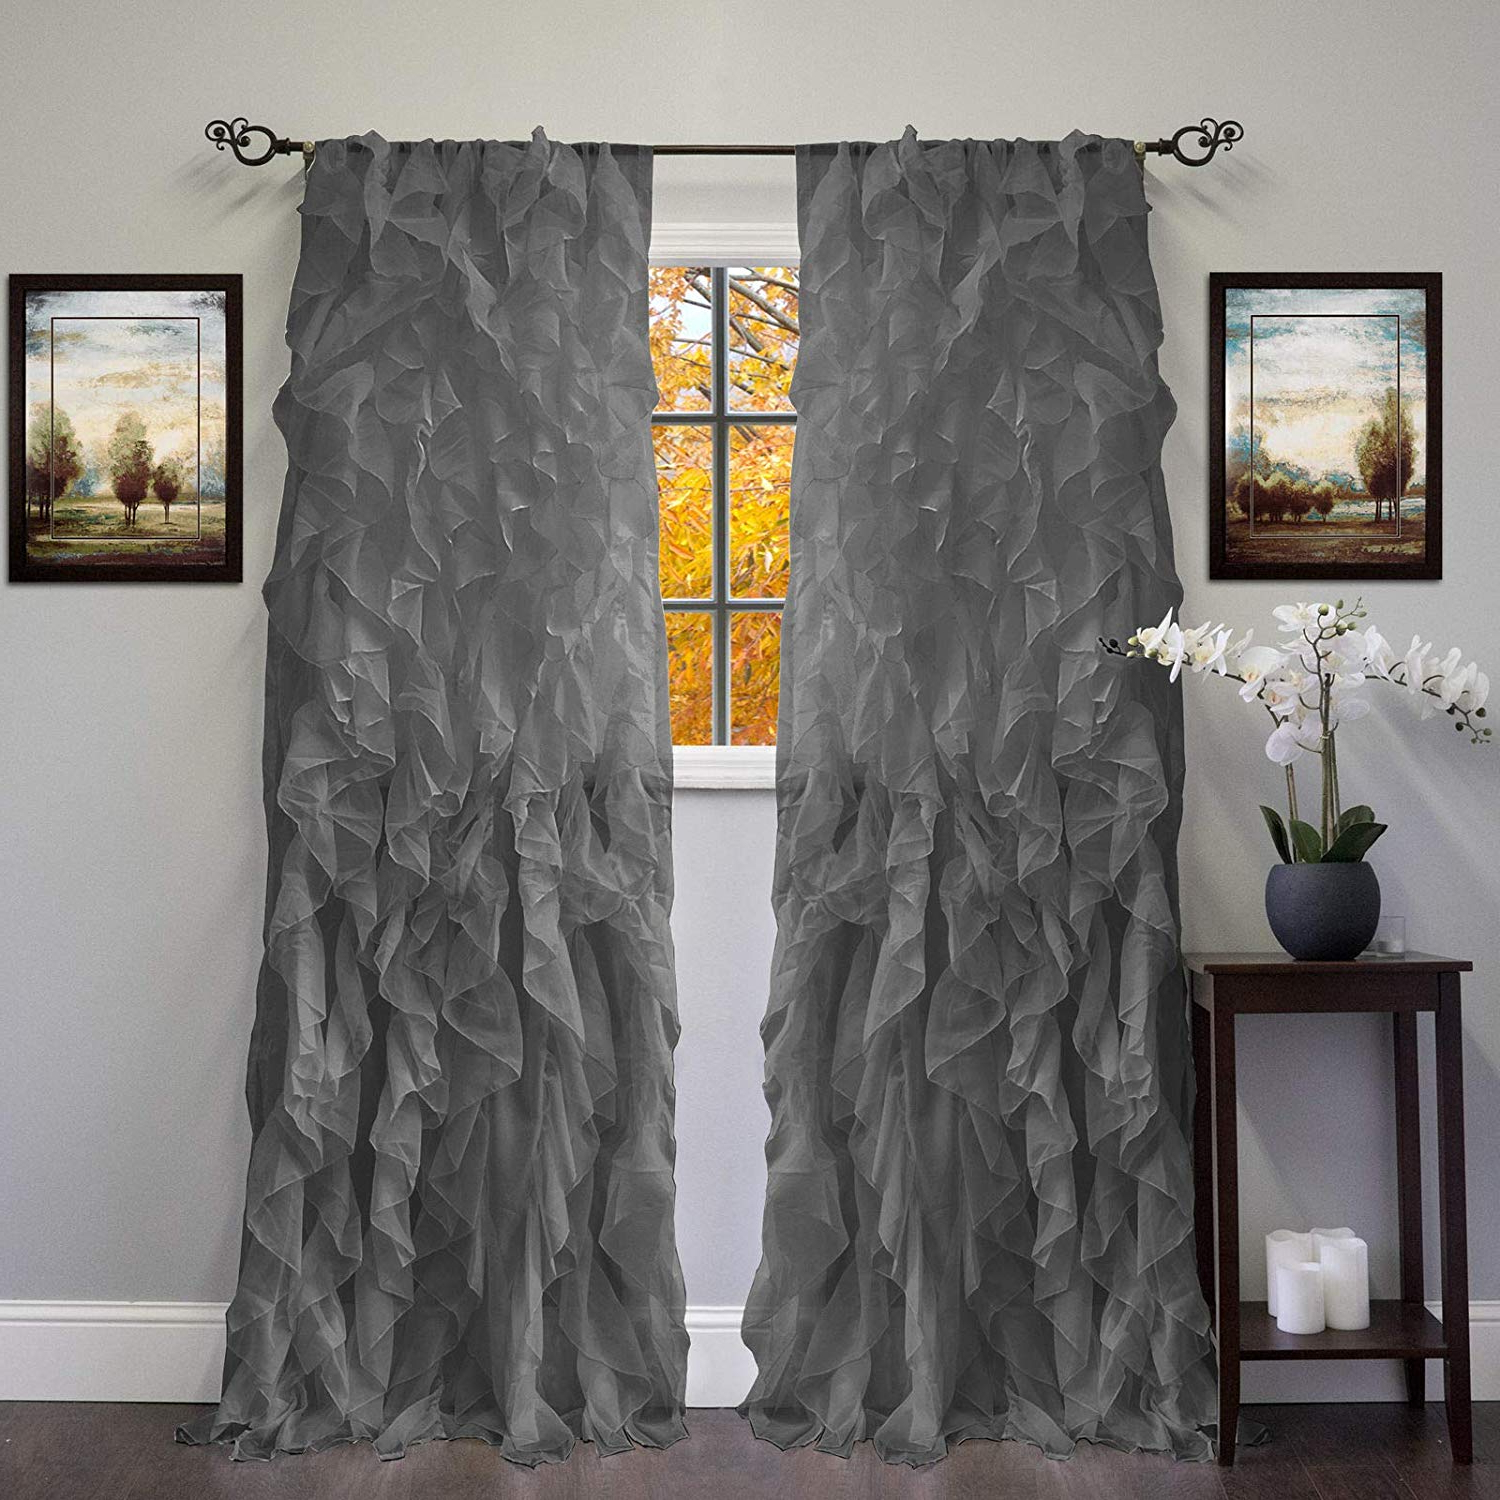 Amazon: Dn Lin New Chic Sheer Voile Vertical Ruffled With Widely Used Vertical Ruffled Waterfall Valances And Curtain Tiers (View 14 of 20)